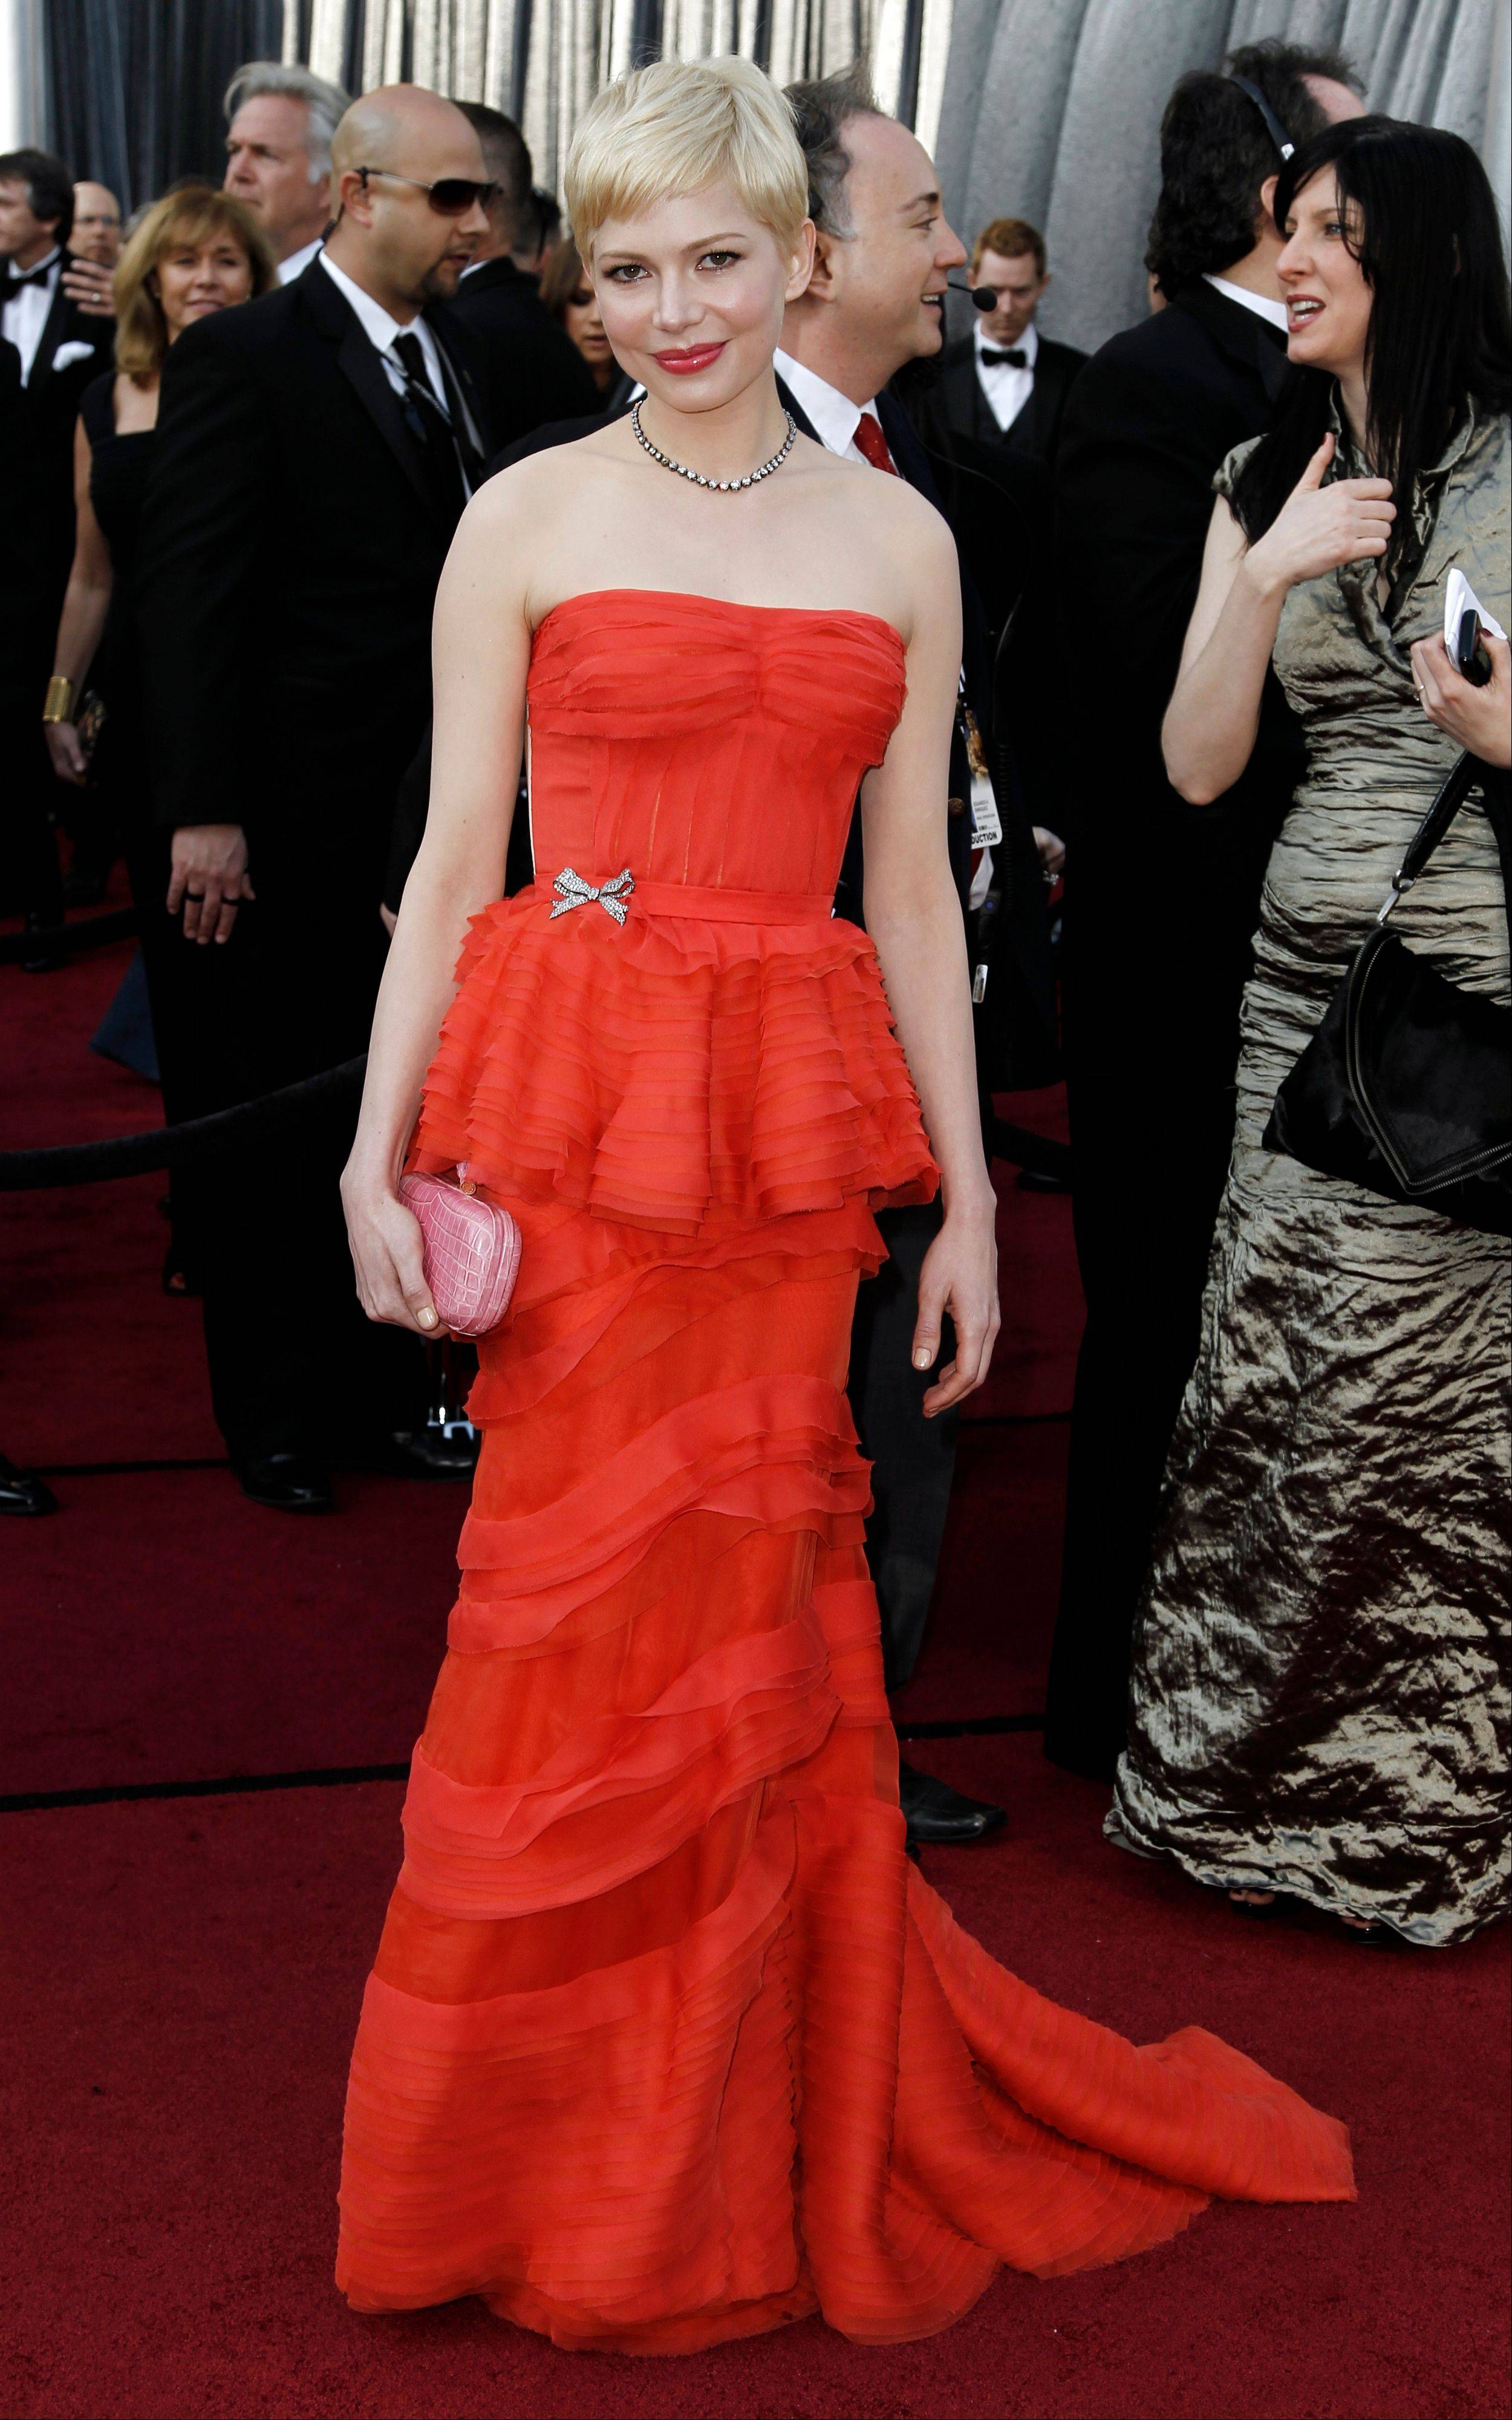 Best Actress nominee Michelle Williams wore Louis Vuitton for the 84th Academy Awards on Sunday.